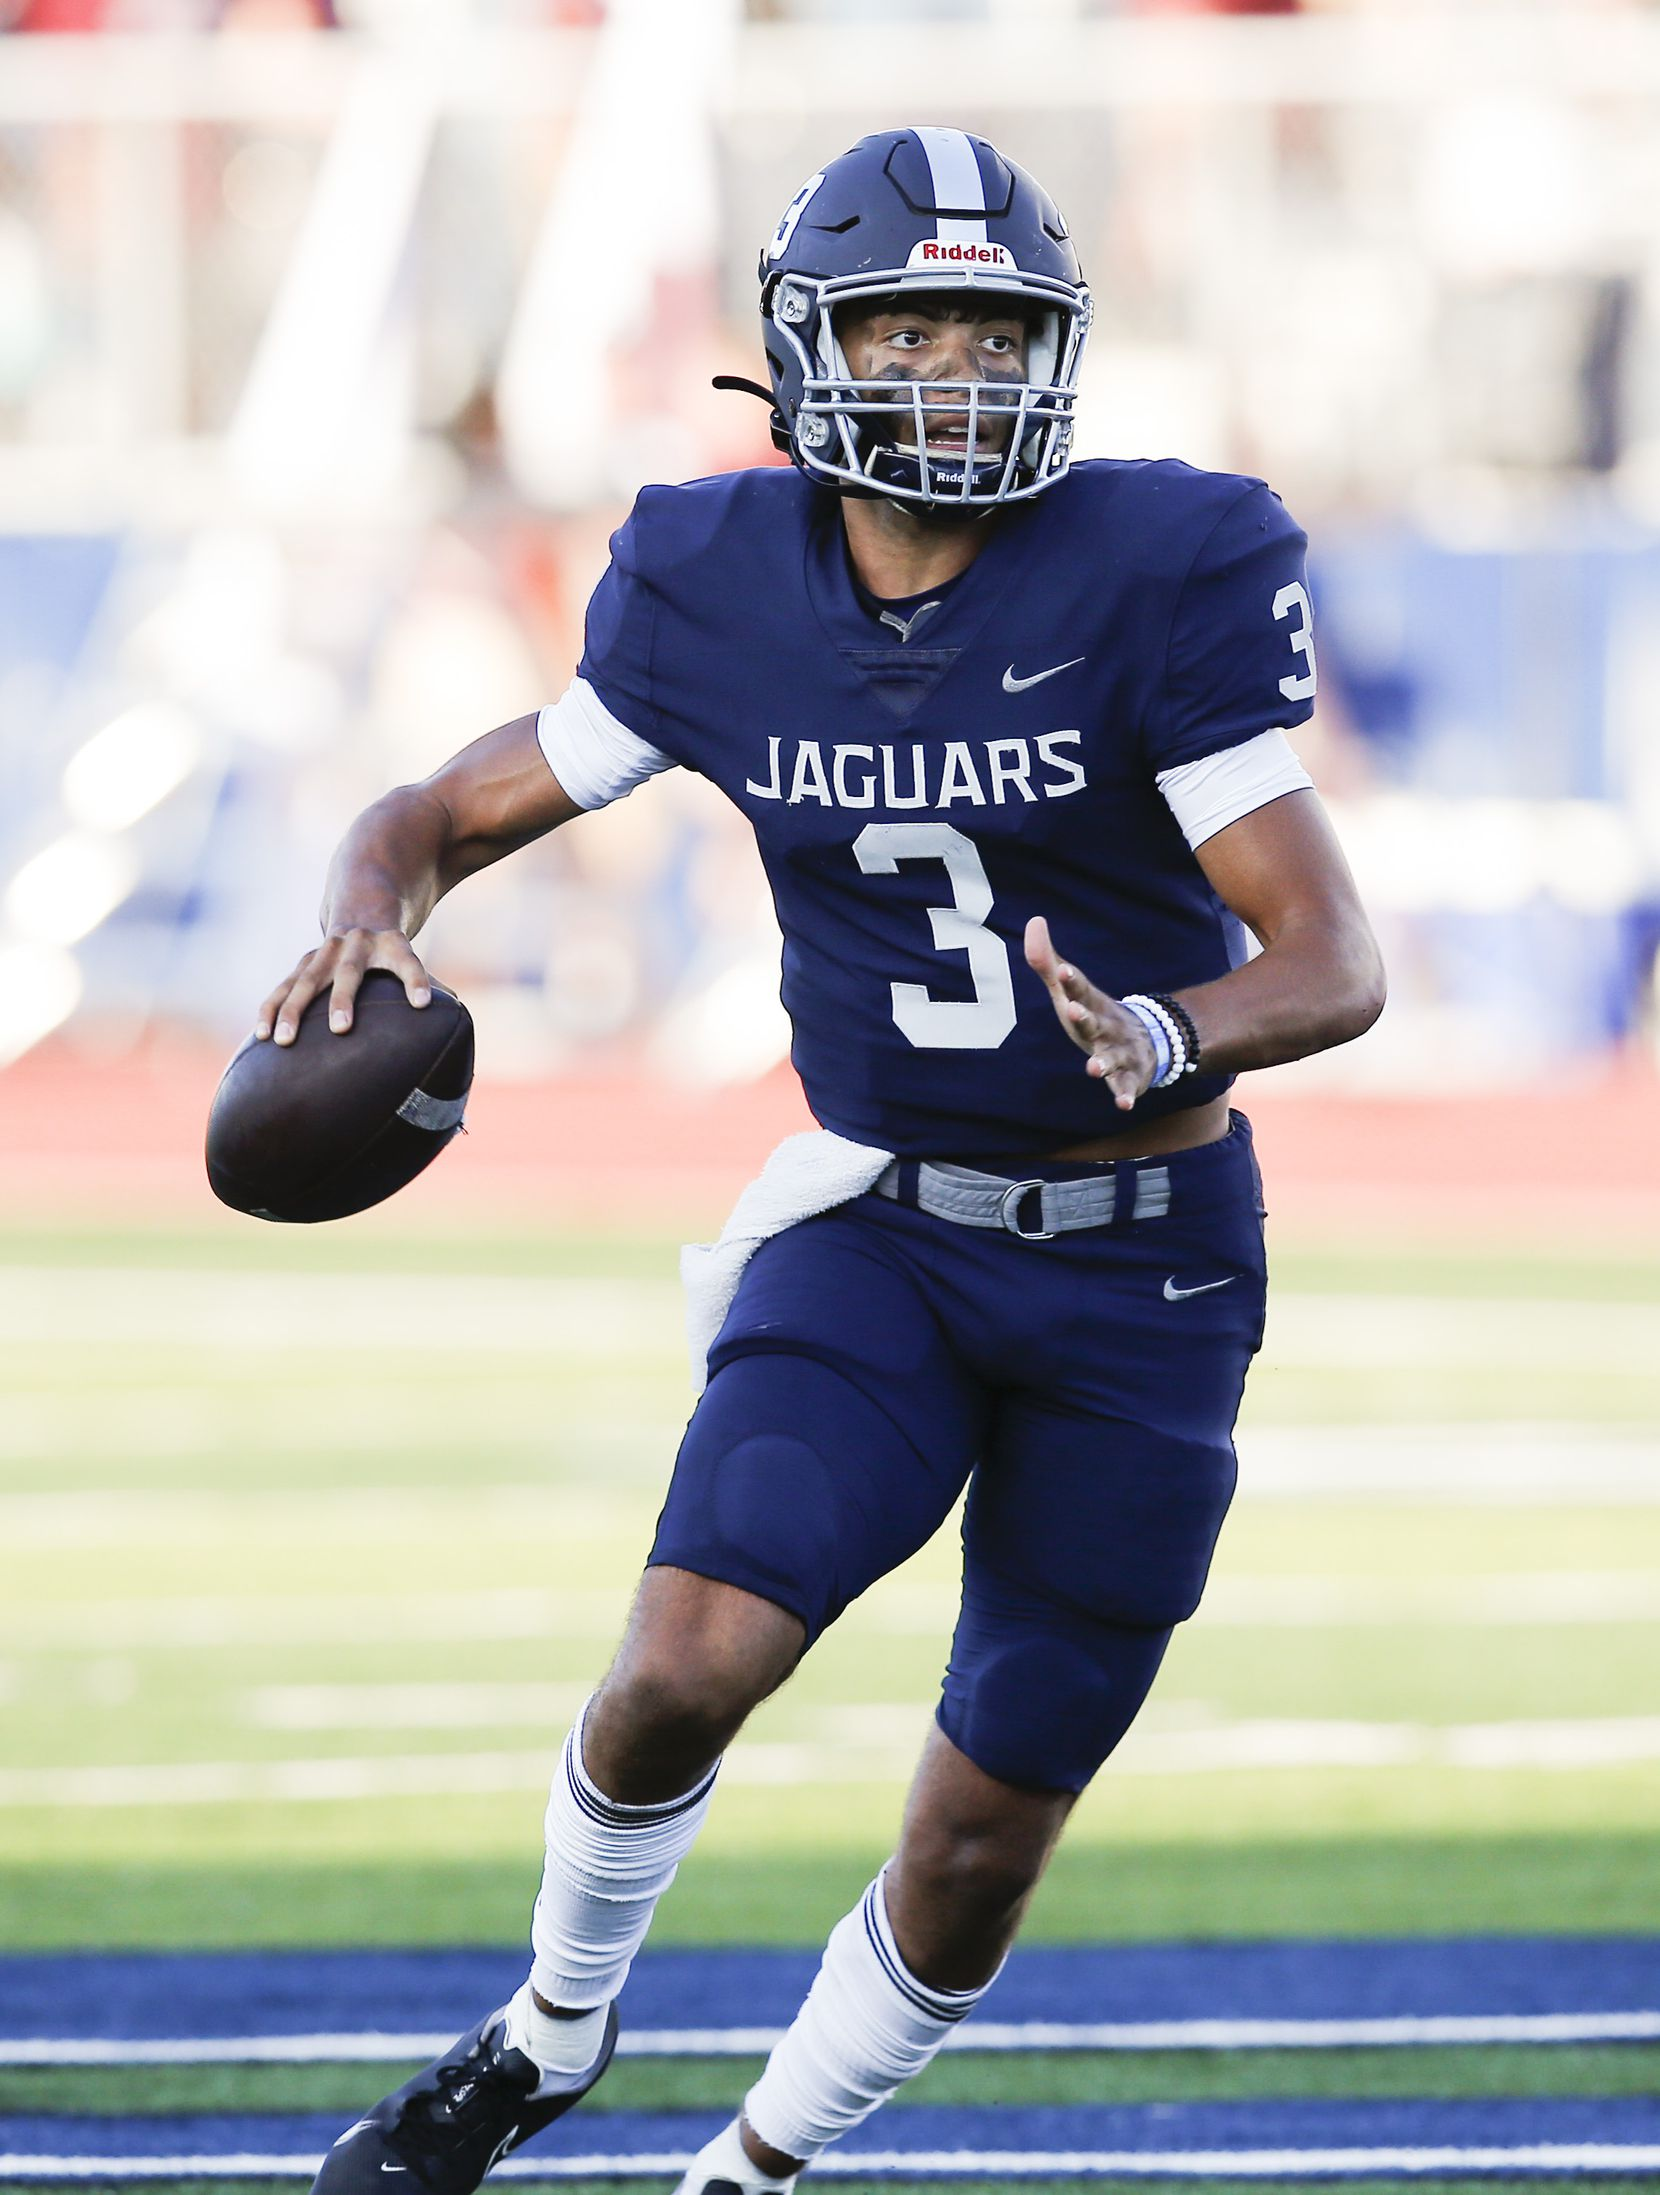 Flower Mound senior quarterback Nick Evers (3) looks for a receiver during the first half of a high school football game against Mesquite at Flower Mound High School, Friday, August 27, 2021. (Brandon Wade/Special Contributor)